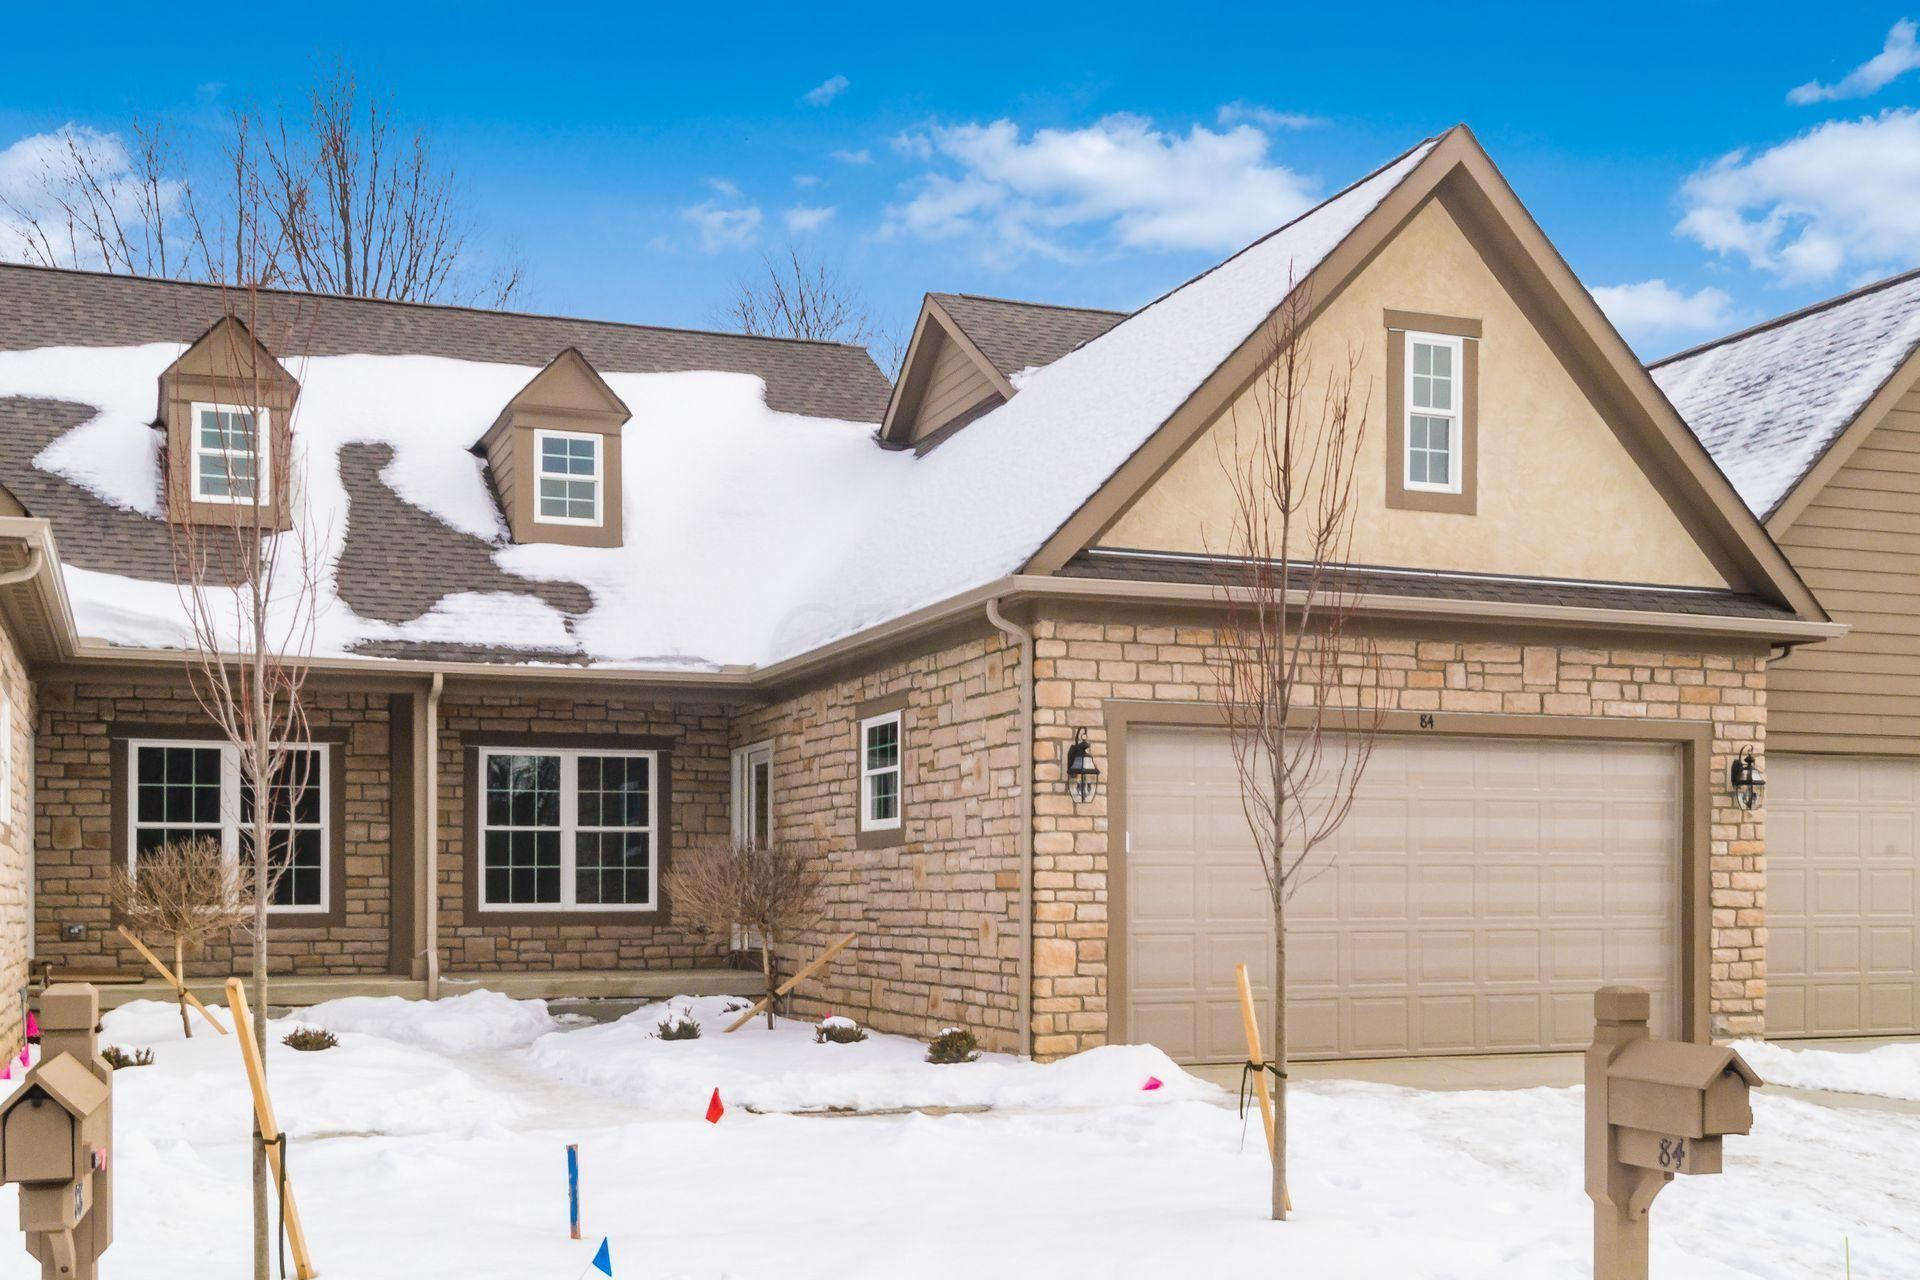 84 Brookehill Drive, Powell, OH 43065 - #: 220012224